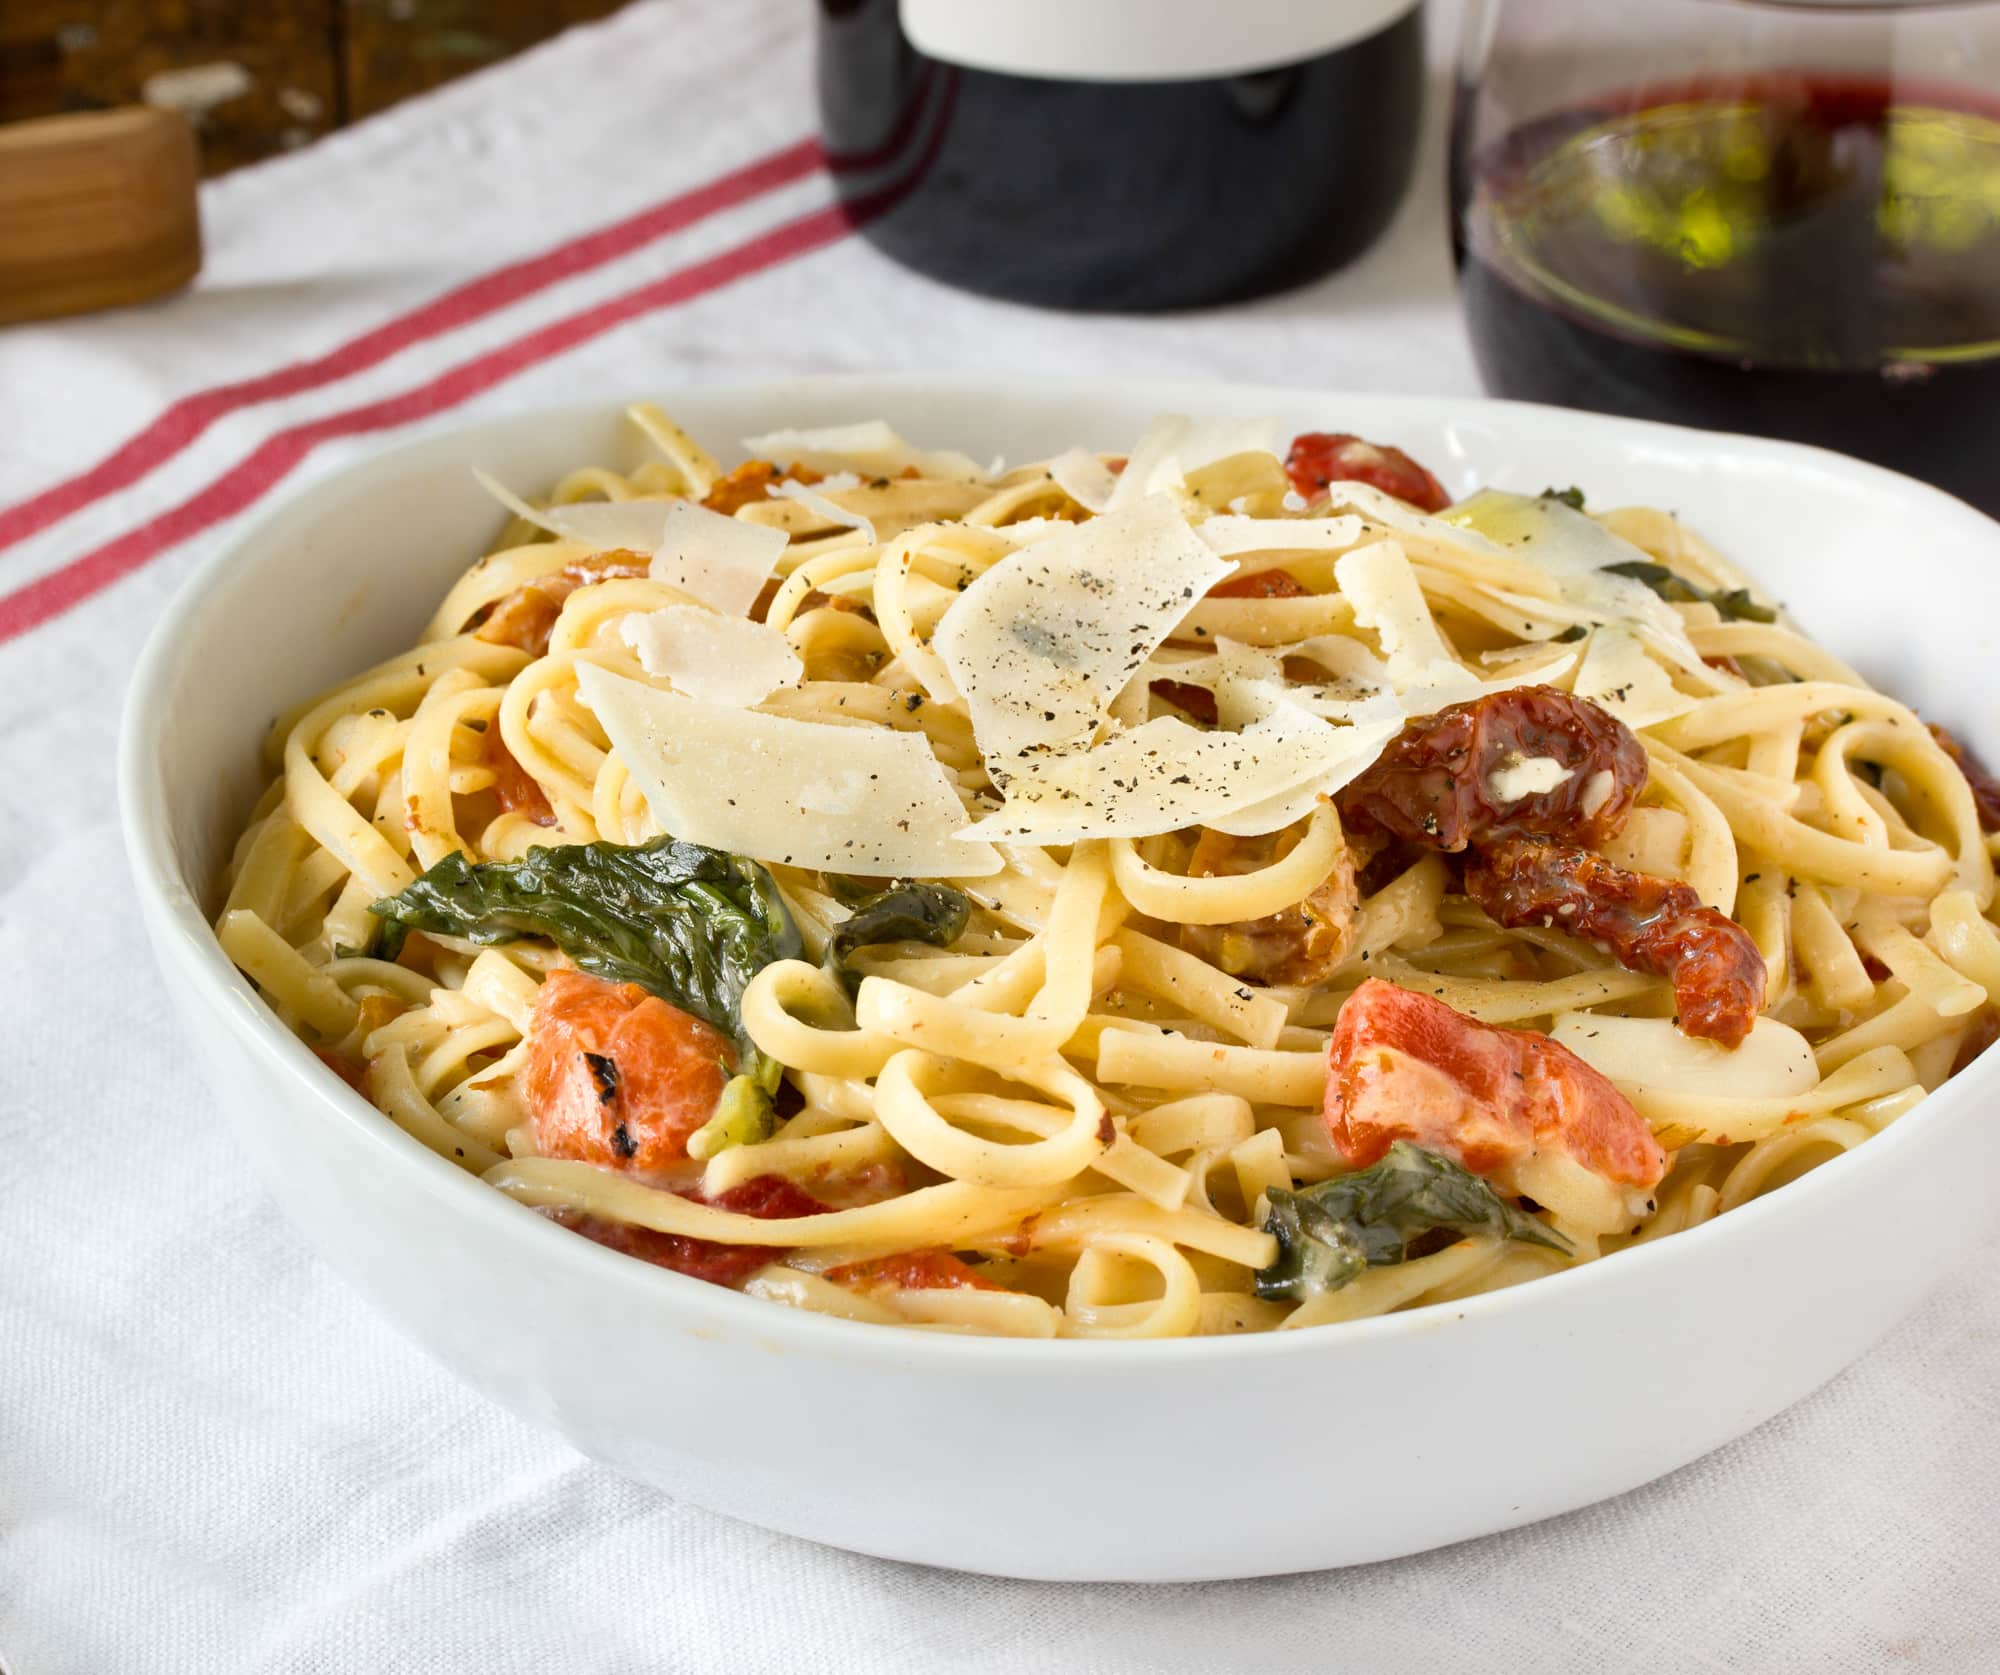 One-Pot Pasta: Linguine with Roasted Red Peppers, Sun-Dried Tomatoes & Brie